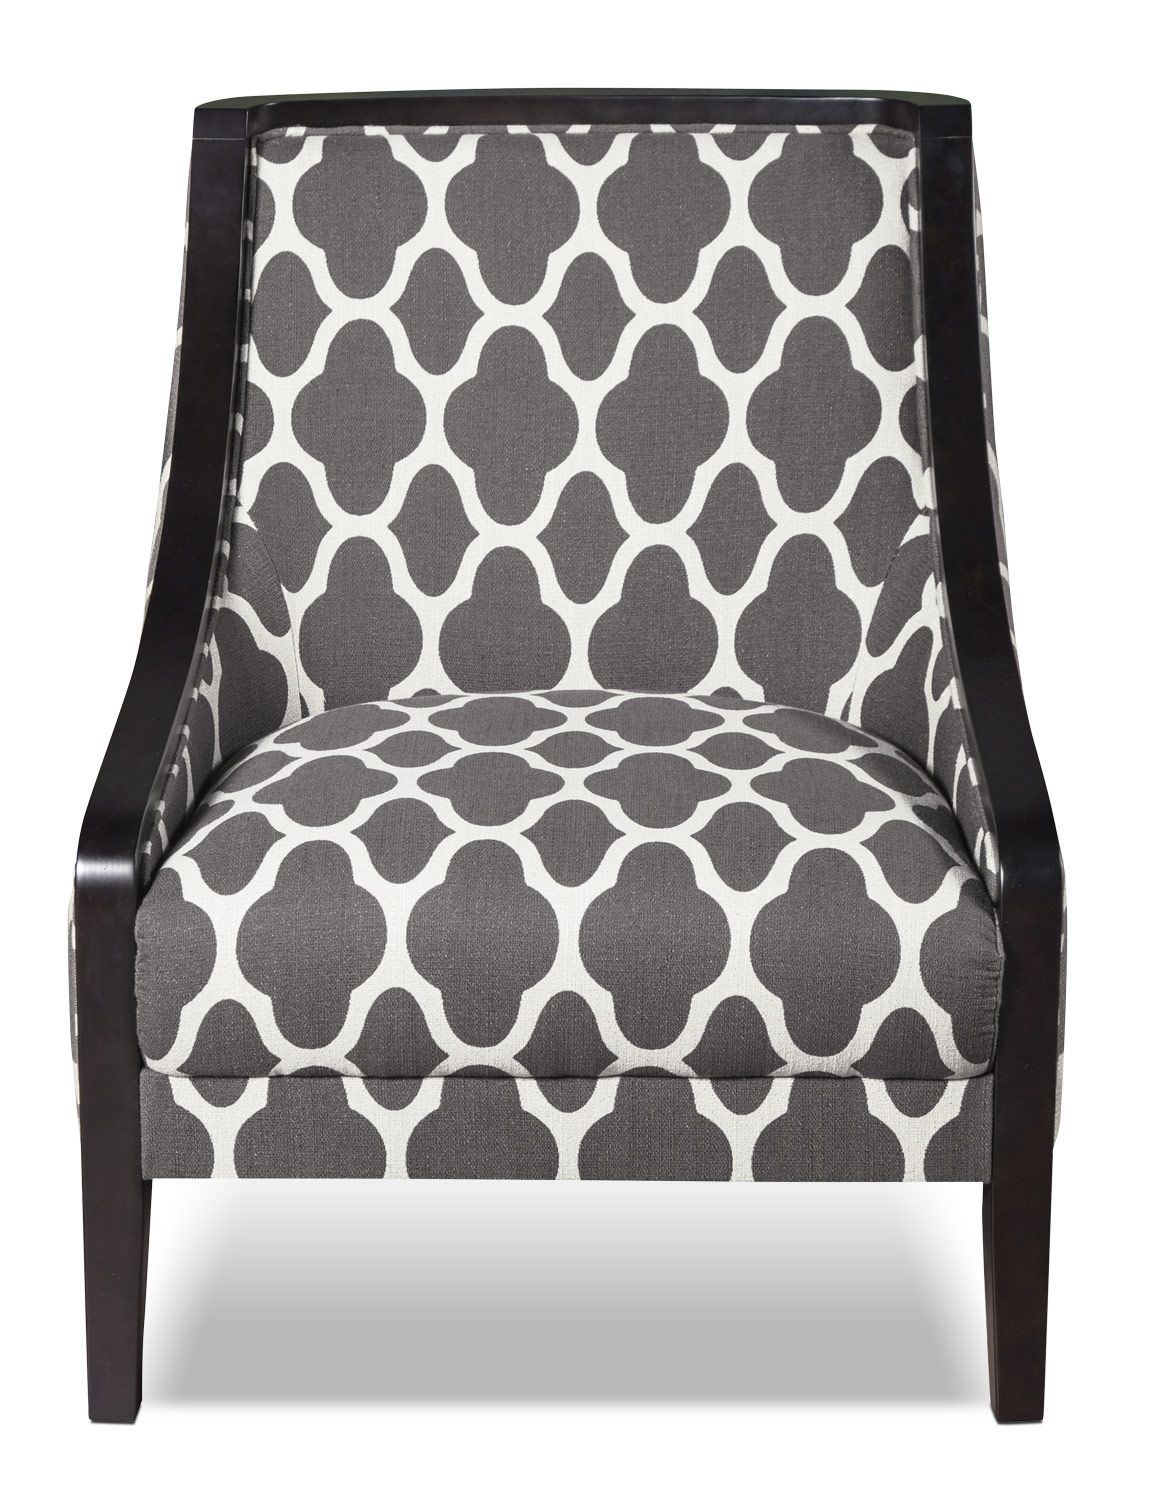 Daphne Fabric Accent Chair Accent Chairs White Accent Chair Fabric Accent Chair